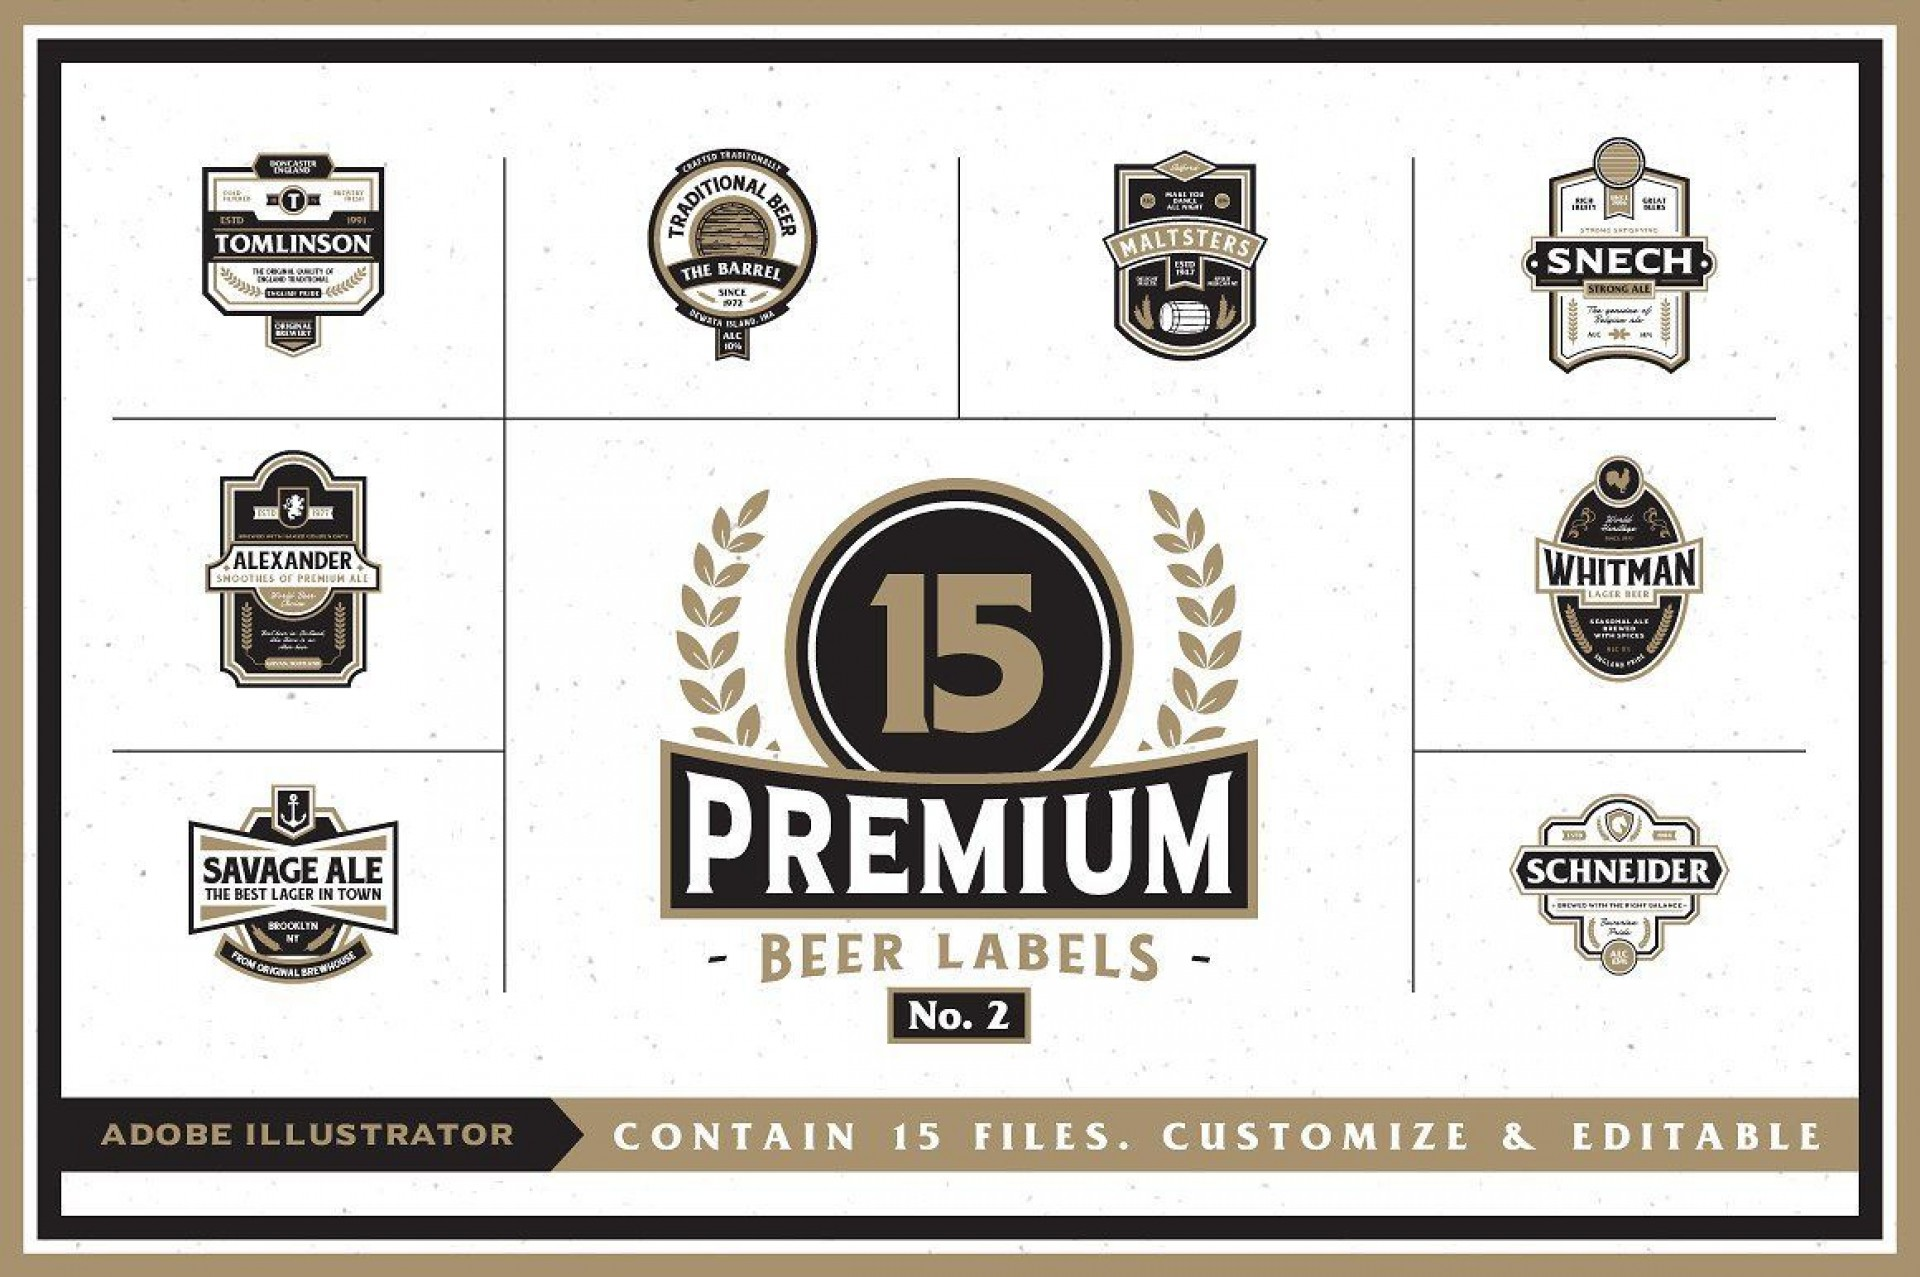 000 Formidable Beer Label Template Word Highest Quality  Free Bottle Microsoft1920